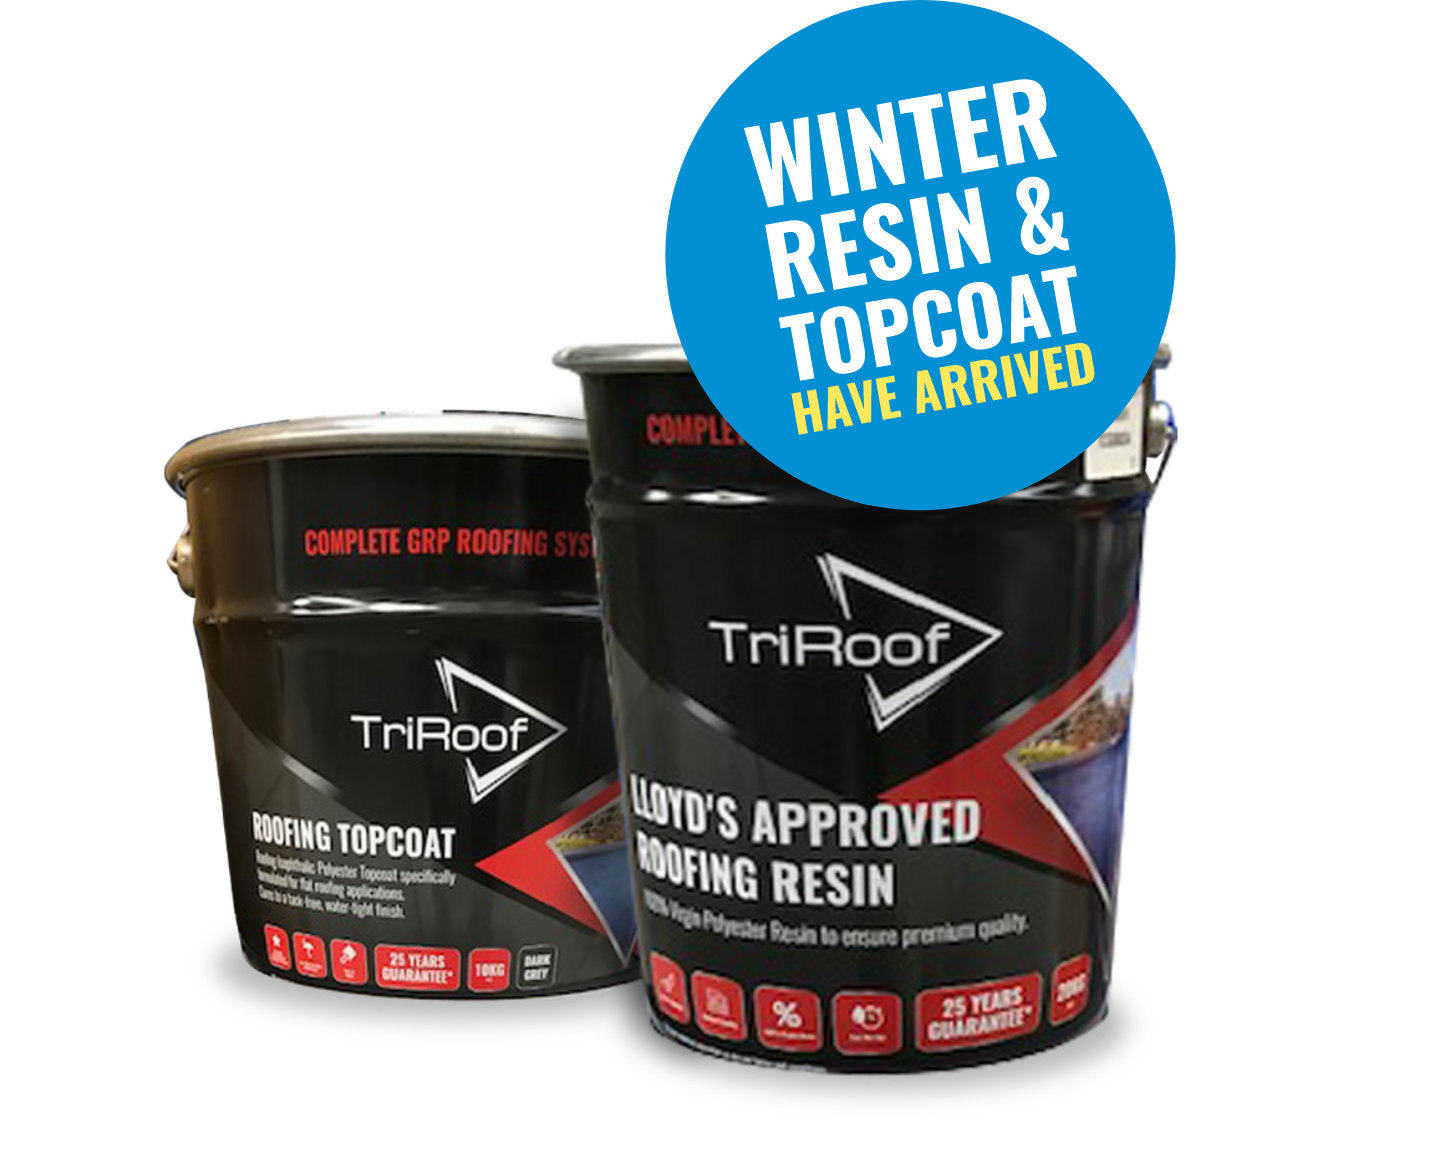 Winter TriRoof Resin and Topcoat